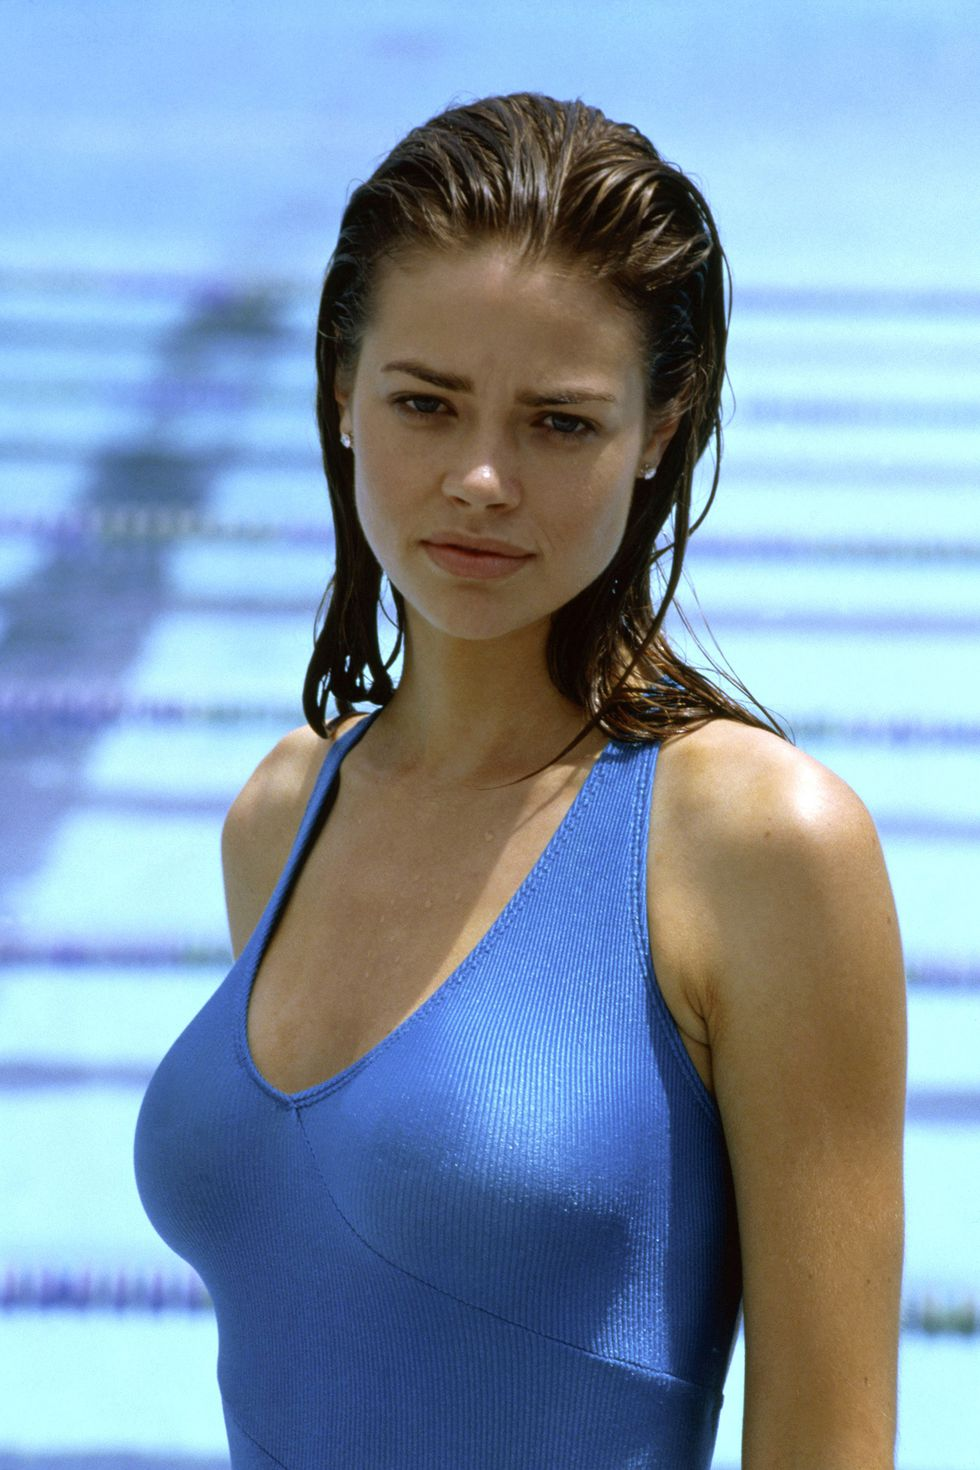 hbz-iconic-swimsuits-denise-richards-wild-things-1998-everett-collection